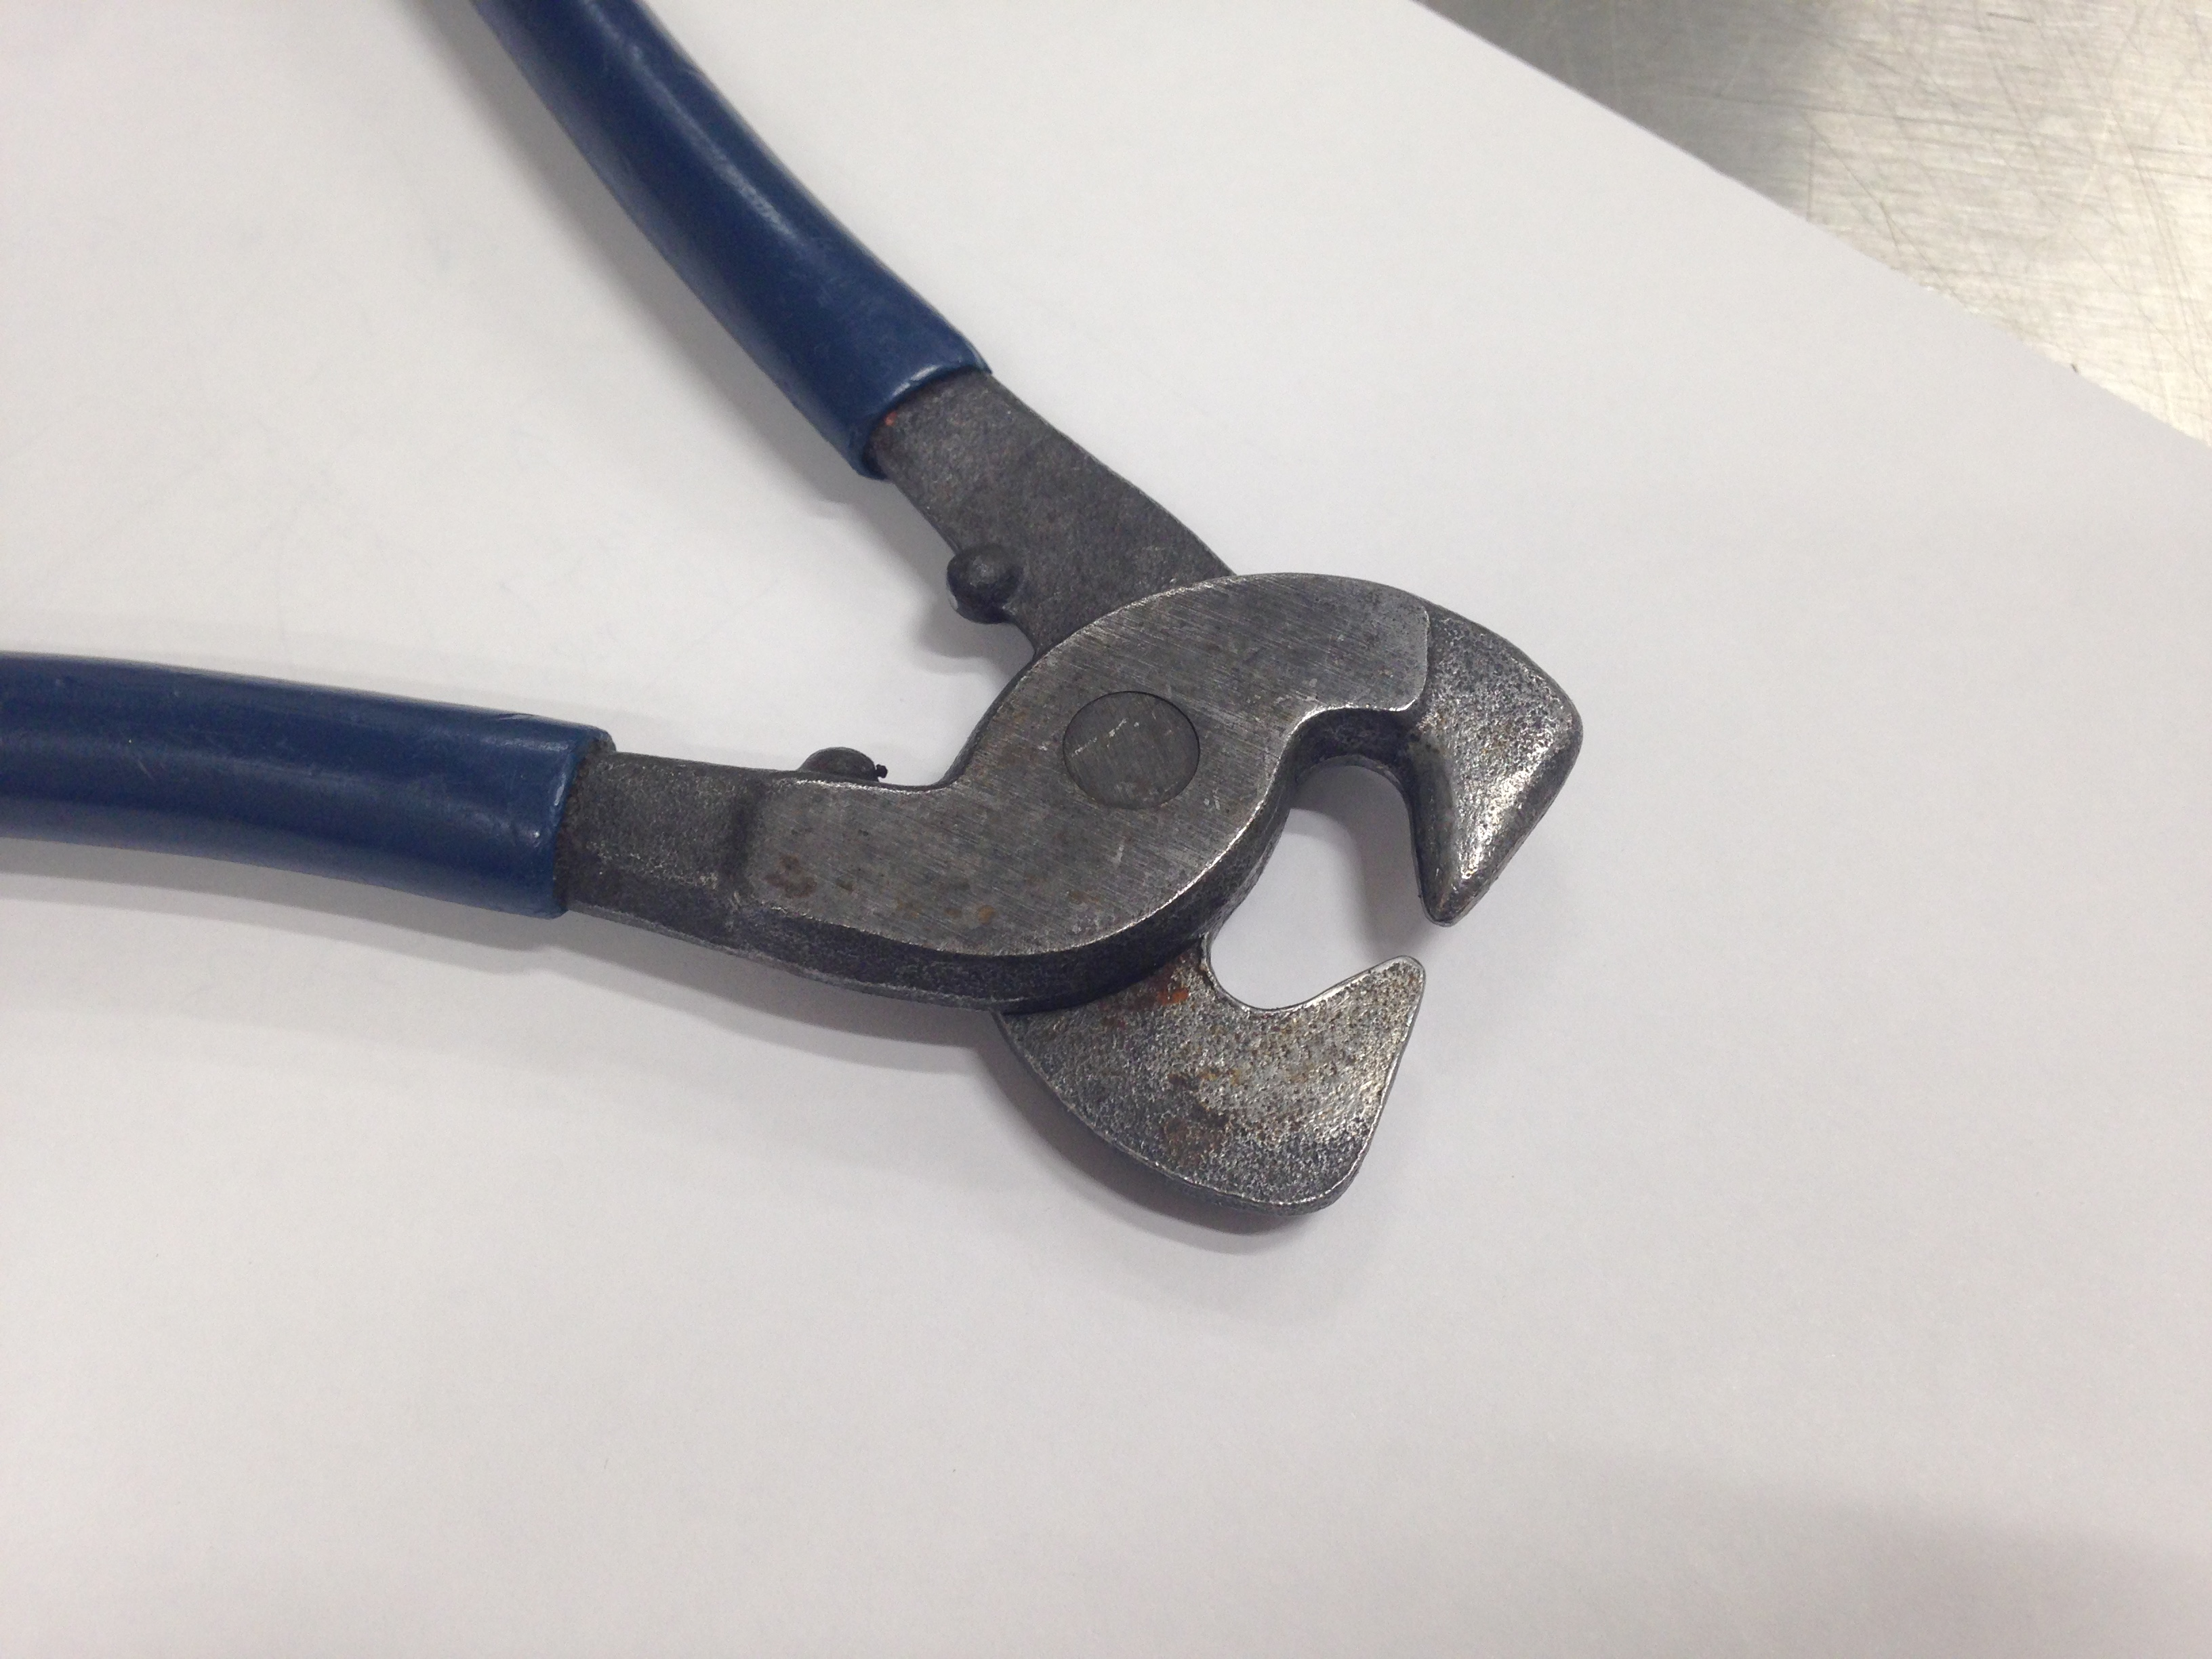 Picture of Can any one identify these strange pliers?